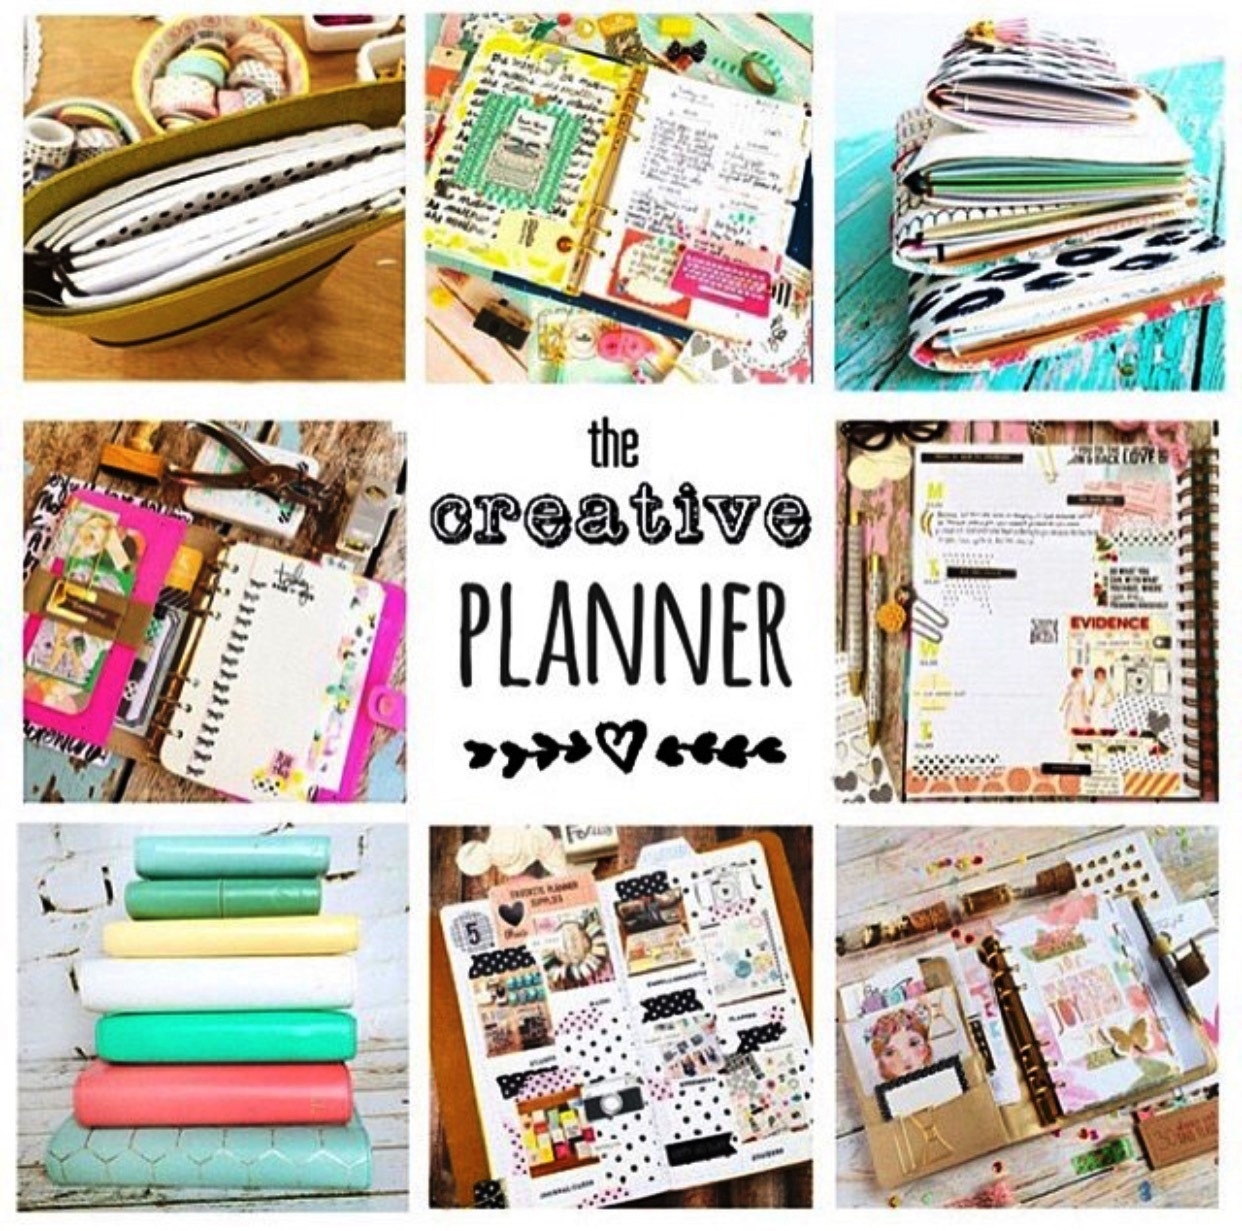 Learn How to Plan with My Creative Planner Workshop